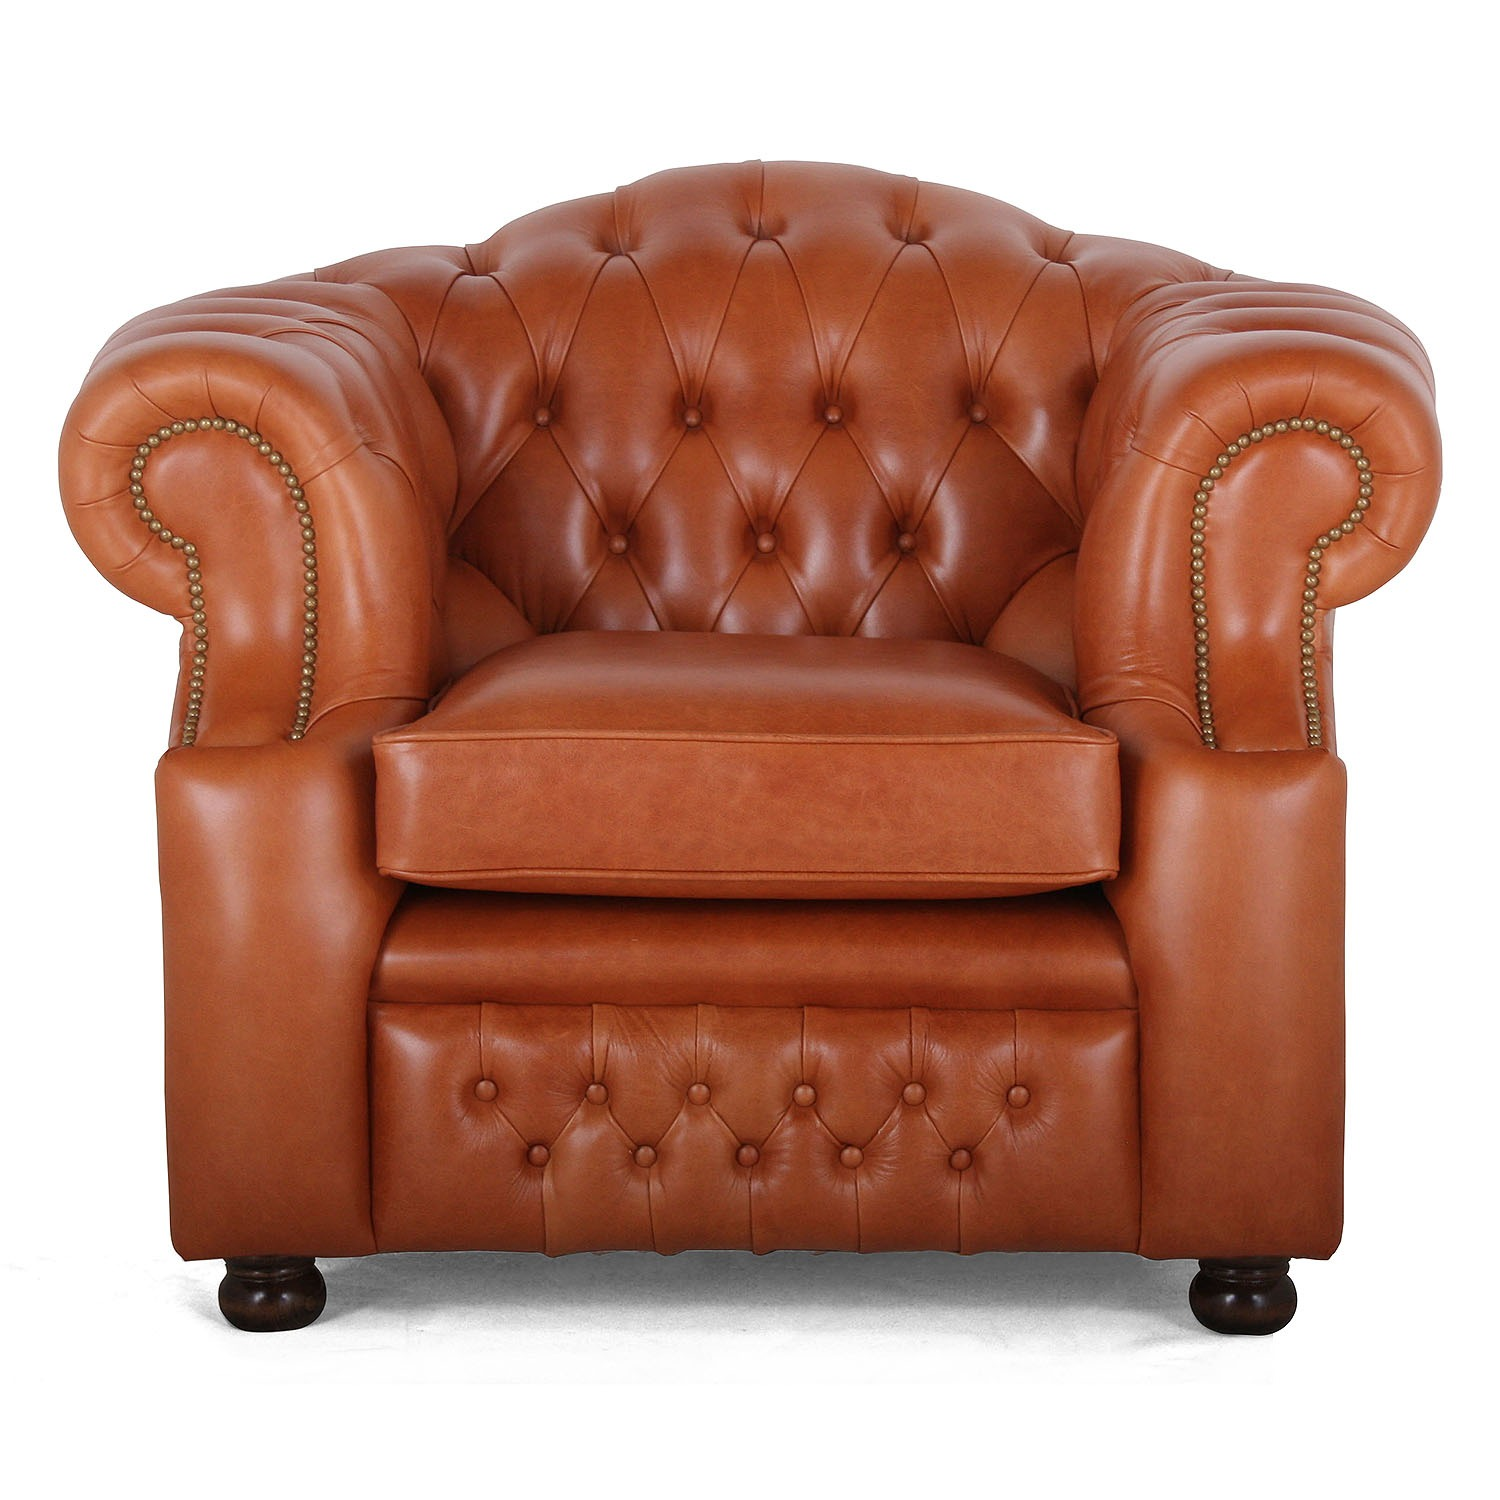 York chair in Old English Bruciato